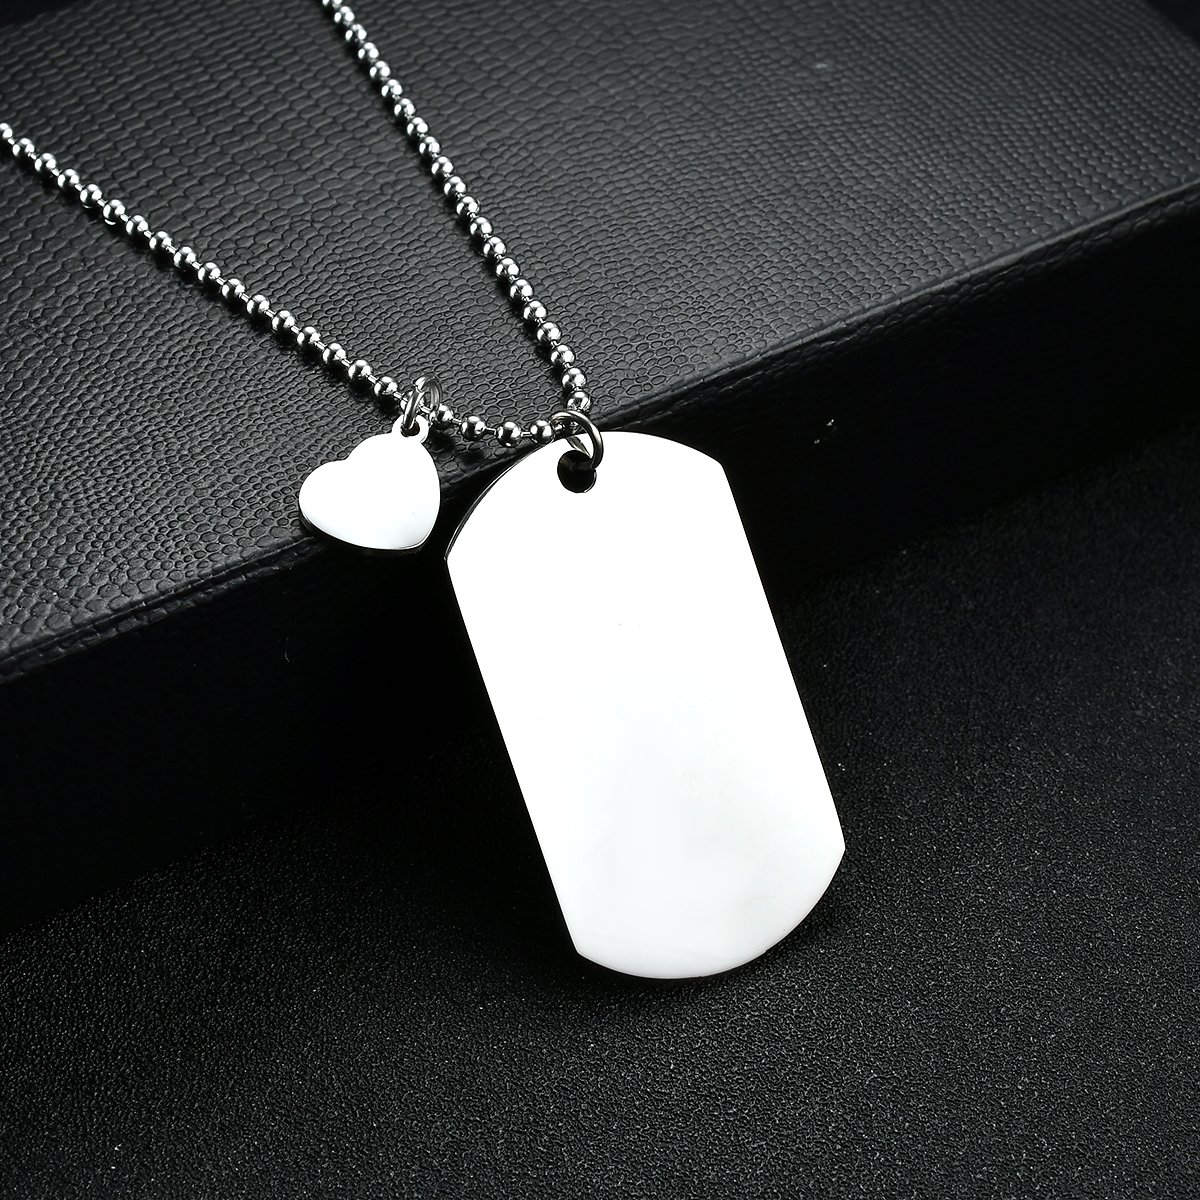 NOVLOVE To My Son from dad Never Forget That I Love Dad You Dog Tag Father Daddy Stay Positive Never Give Up Quotes Military Air Force Navy Necklace Gift Best Son Birthday Graduation by NOVLOVE (Image #4)